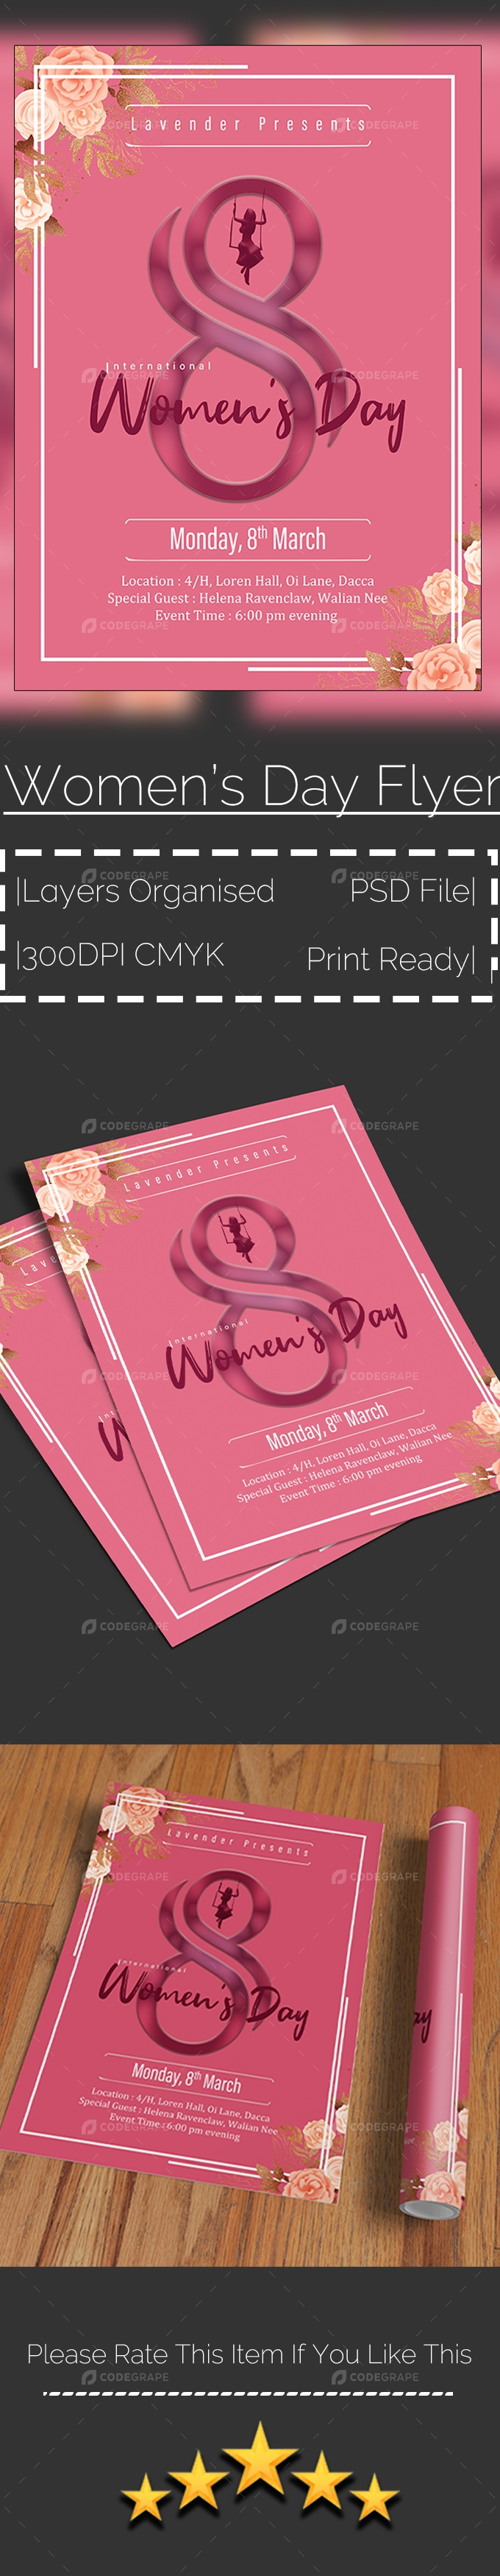 Women's Day Event Flyer